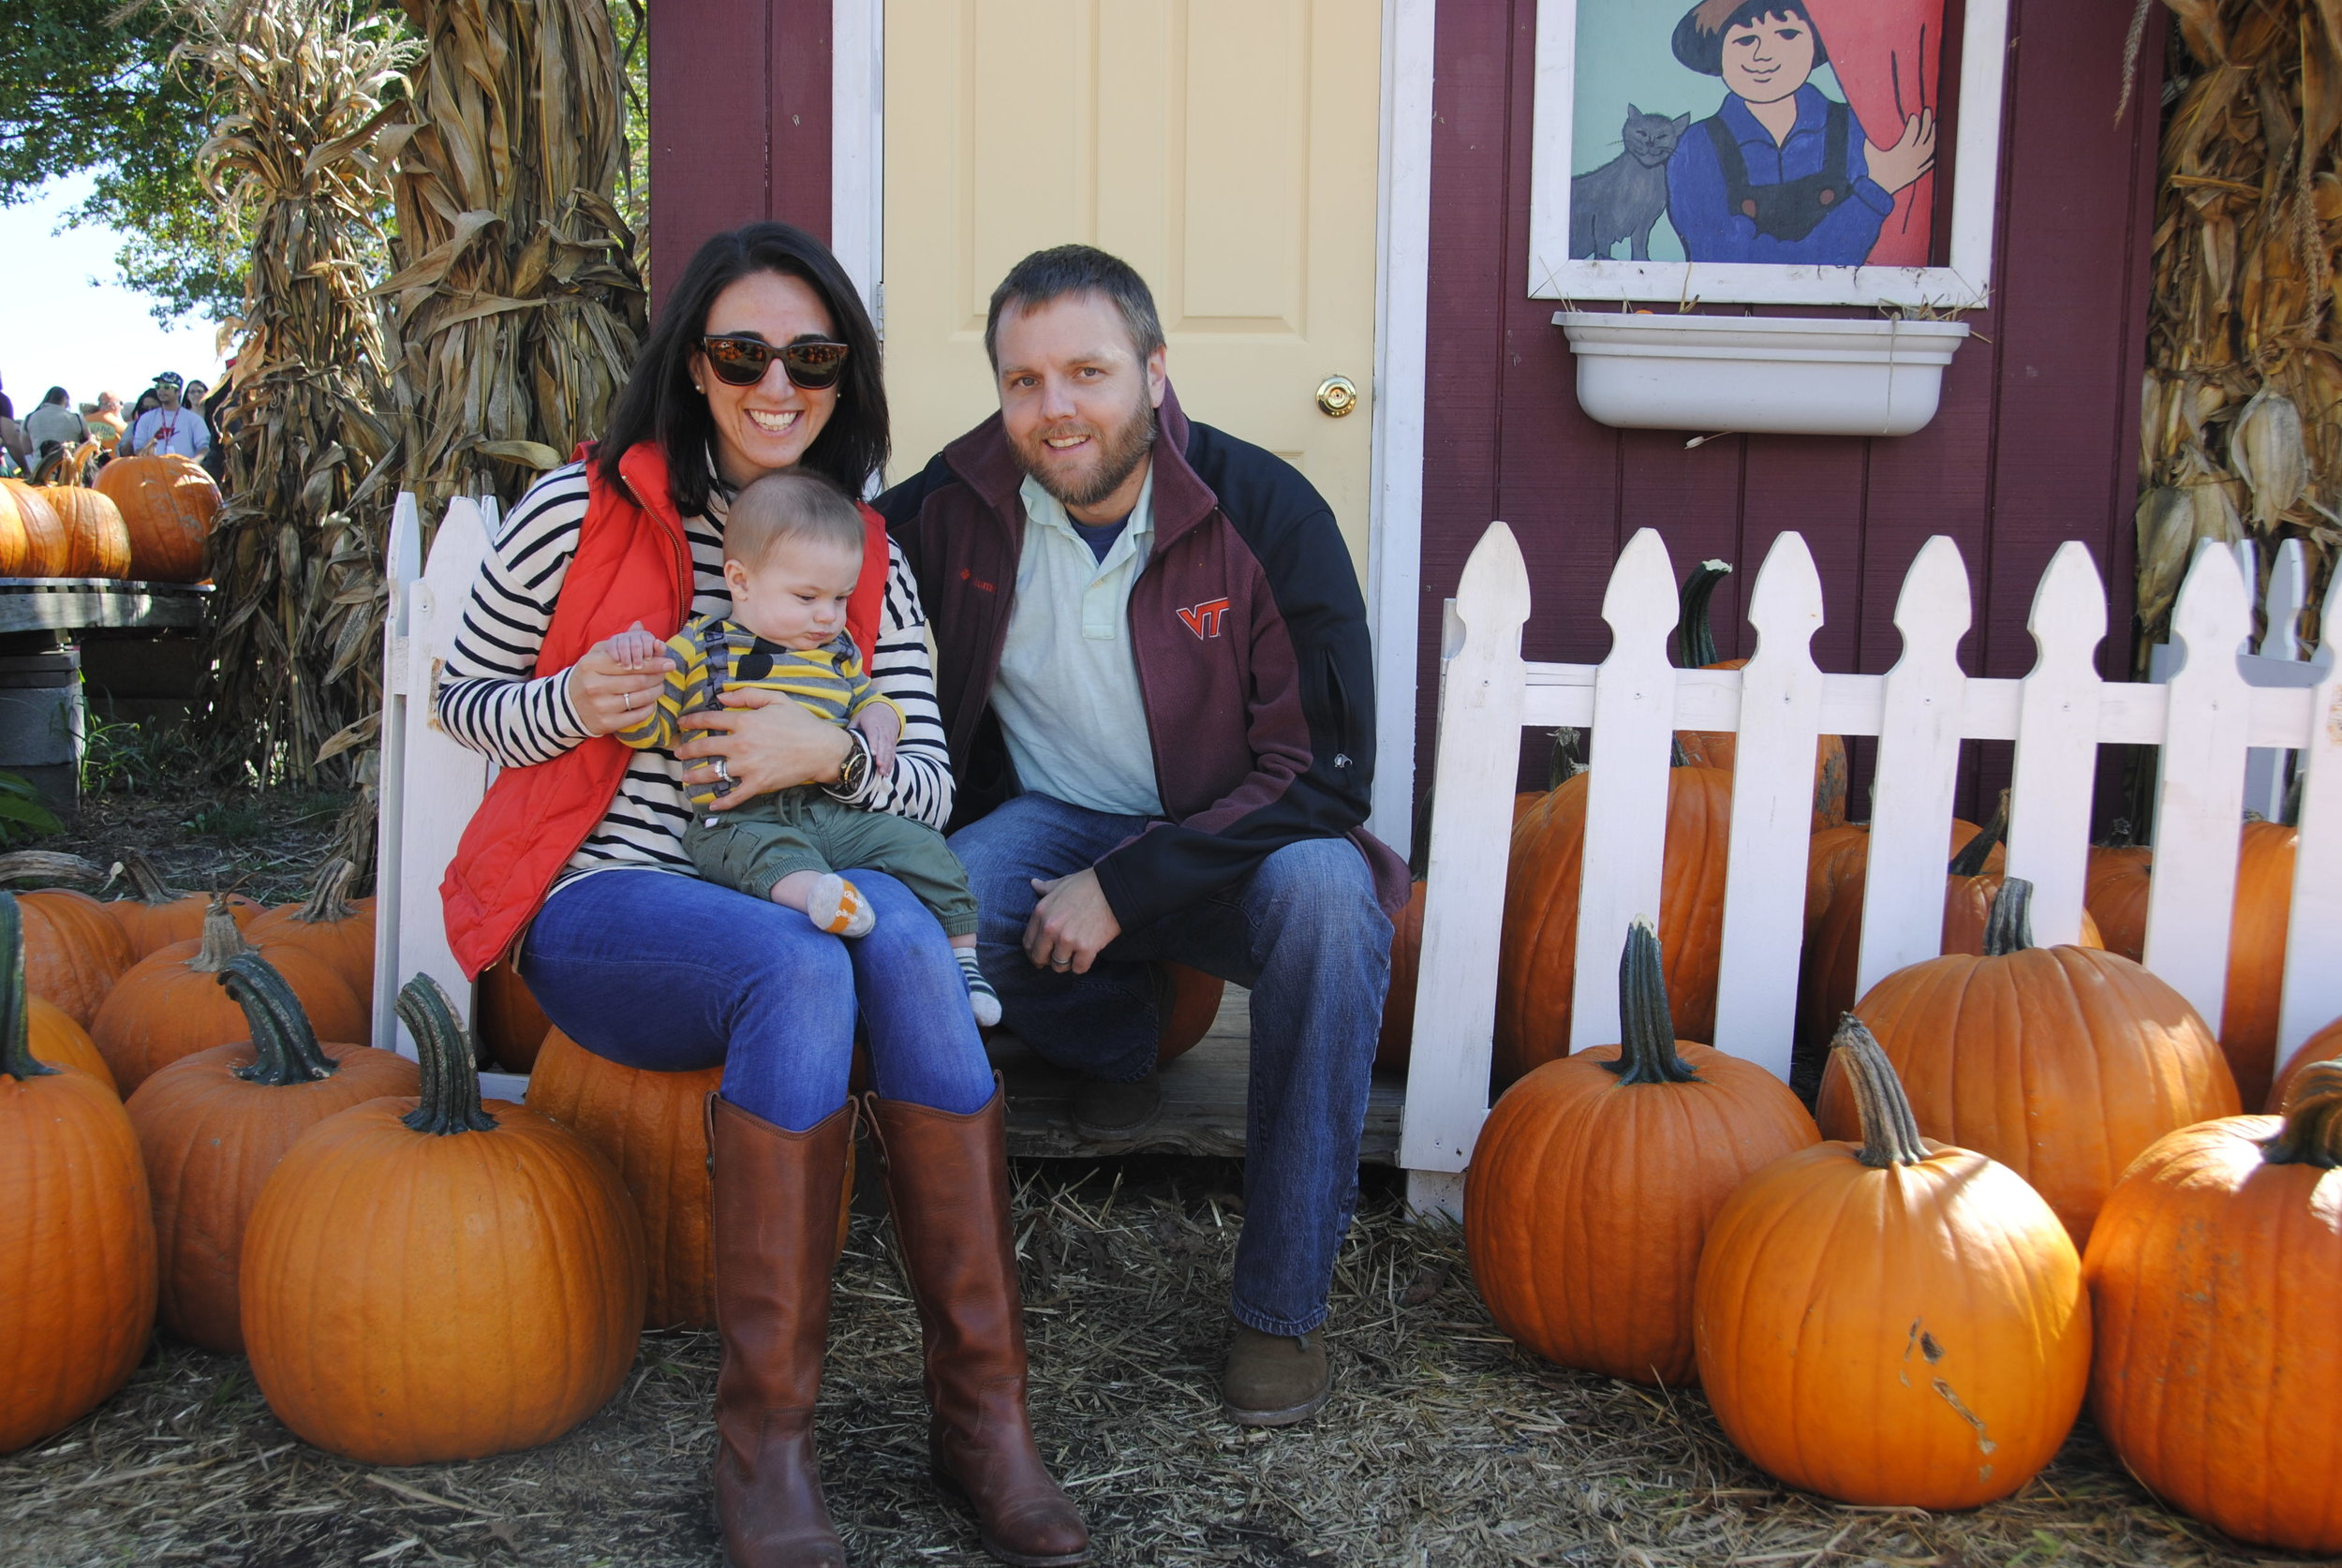 Happy family of three from Virginia hoping to adopt a child